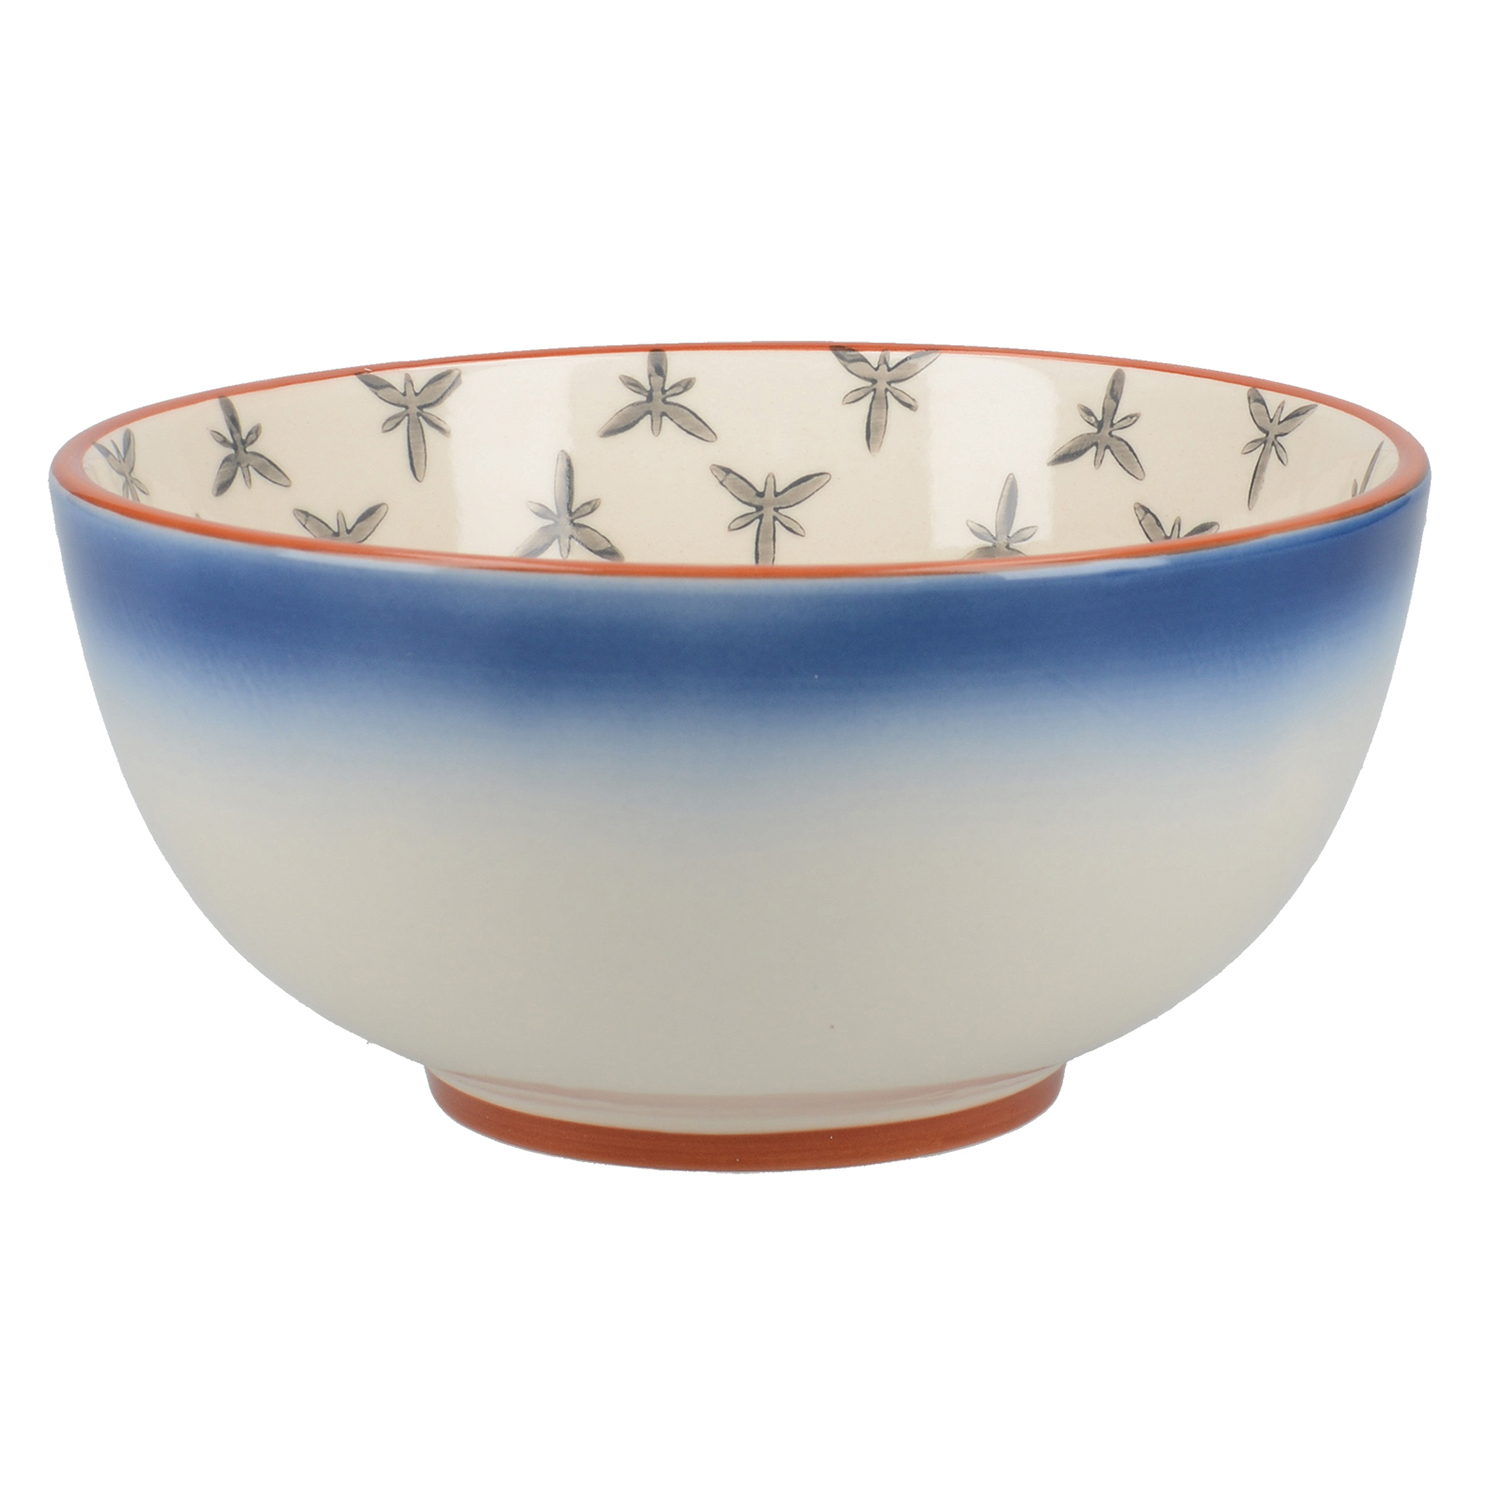 Image of Drift Cereal Bowl, Ombre Blue